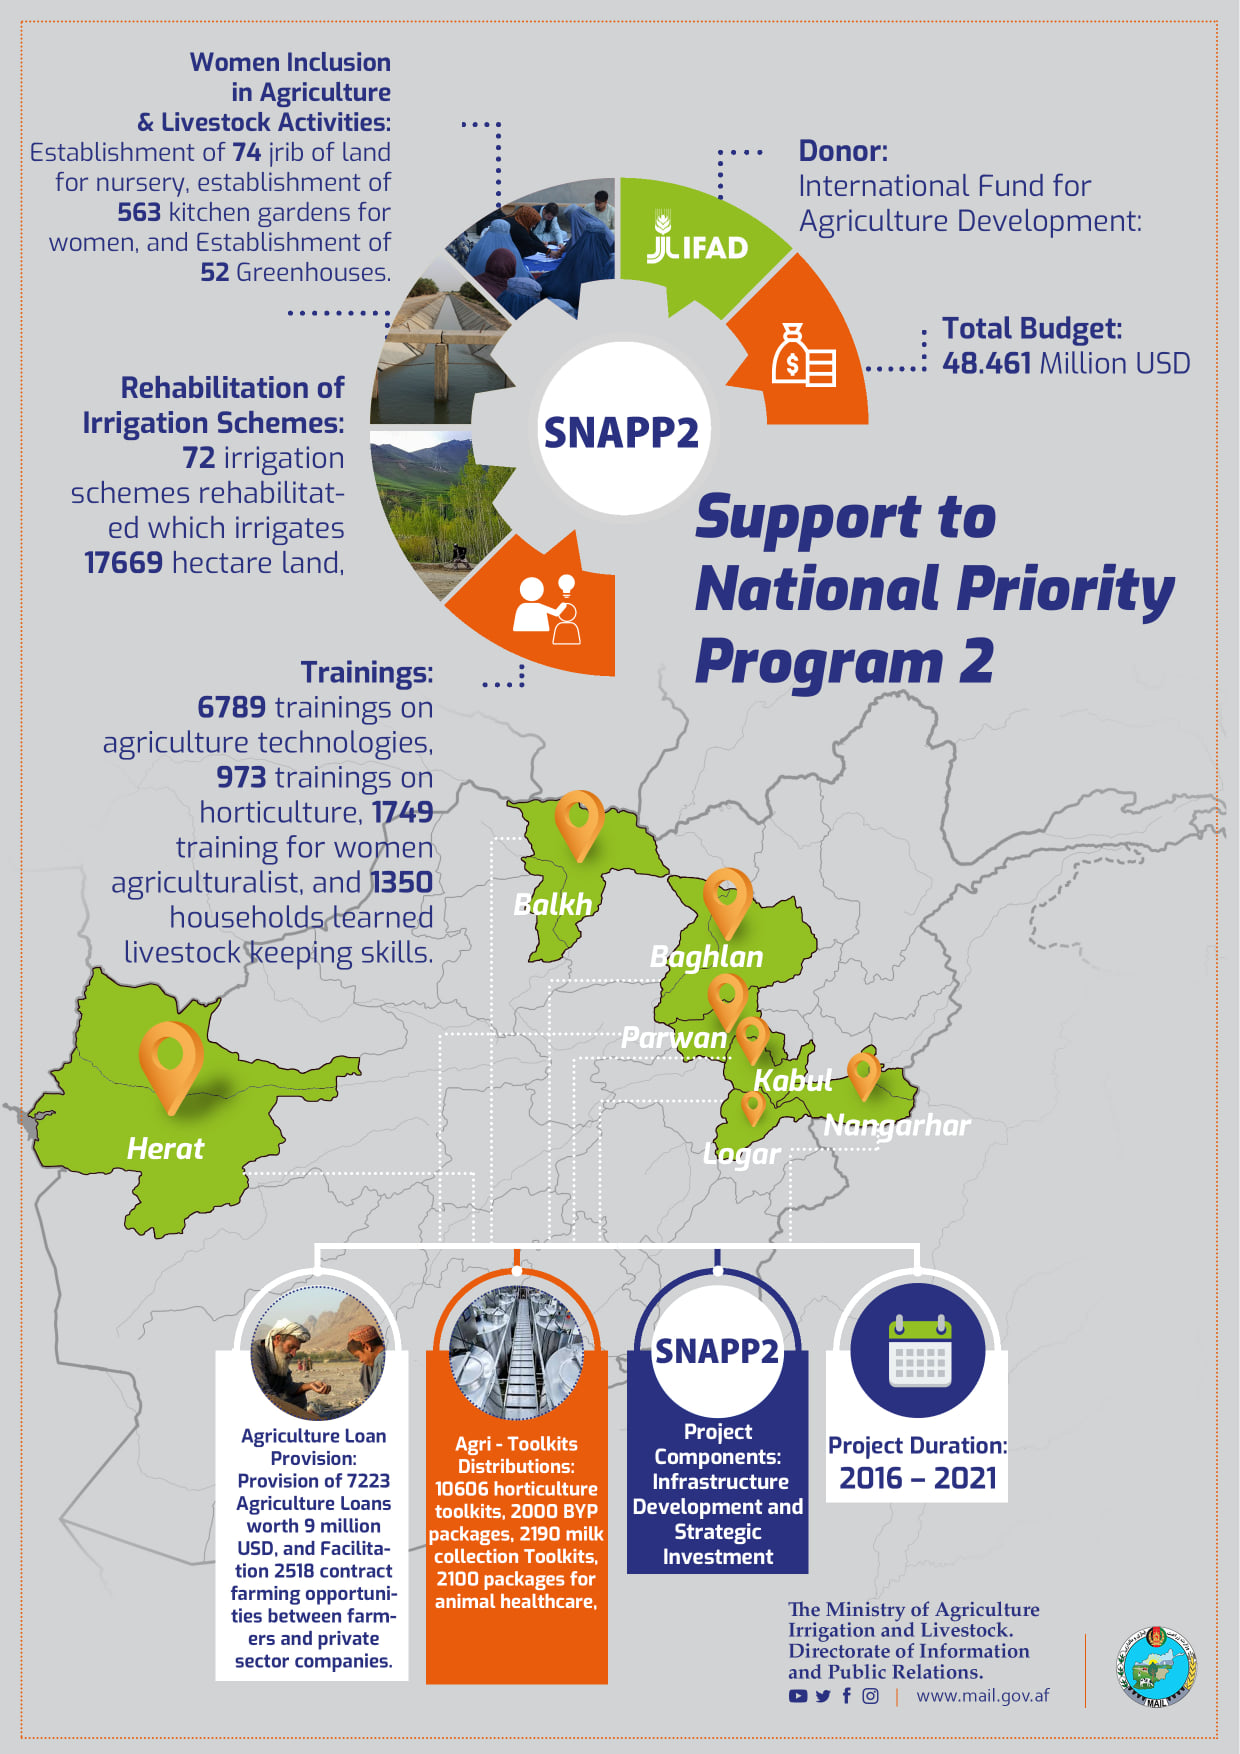 The main activities and achievements of Second National Priority Suppprt Project of the Ministry of Agriculture, Irrigation and Livestock.‎